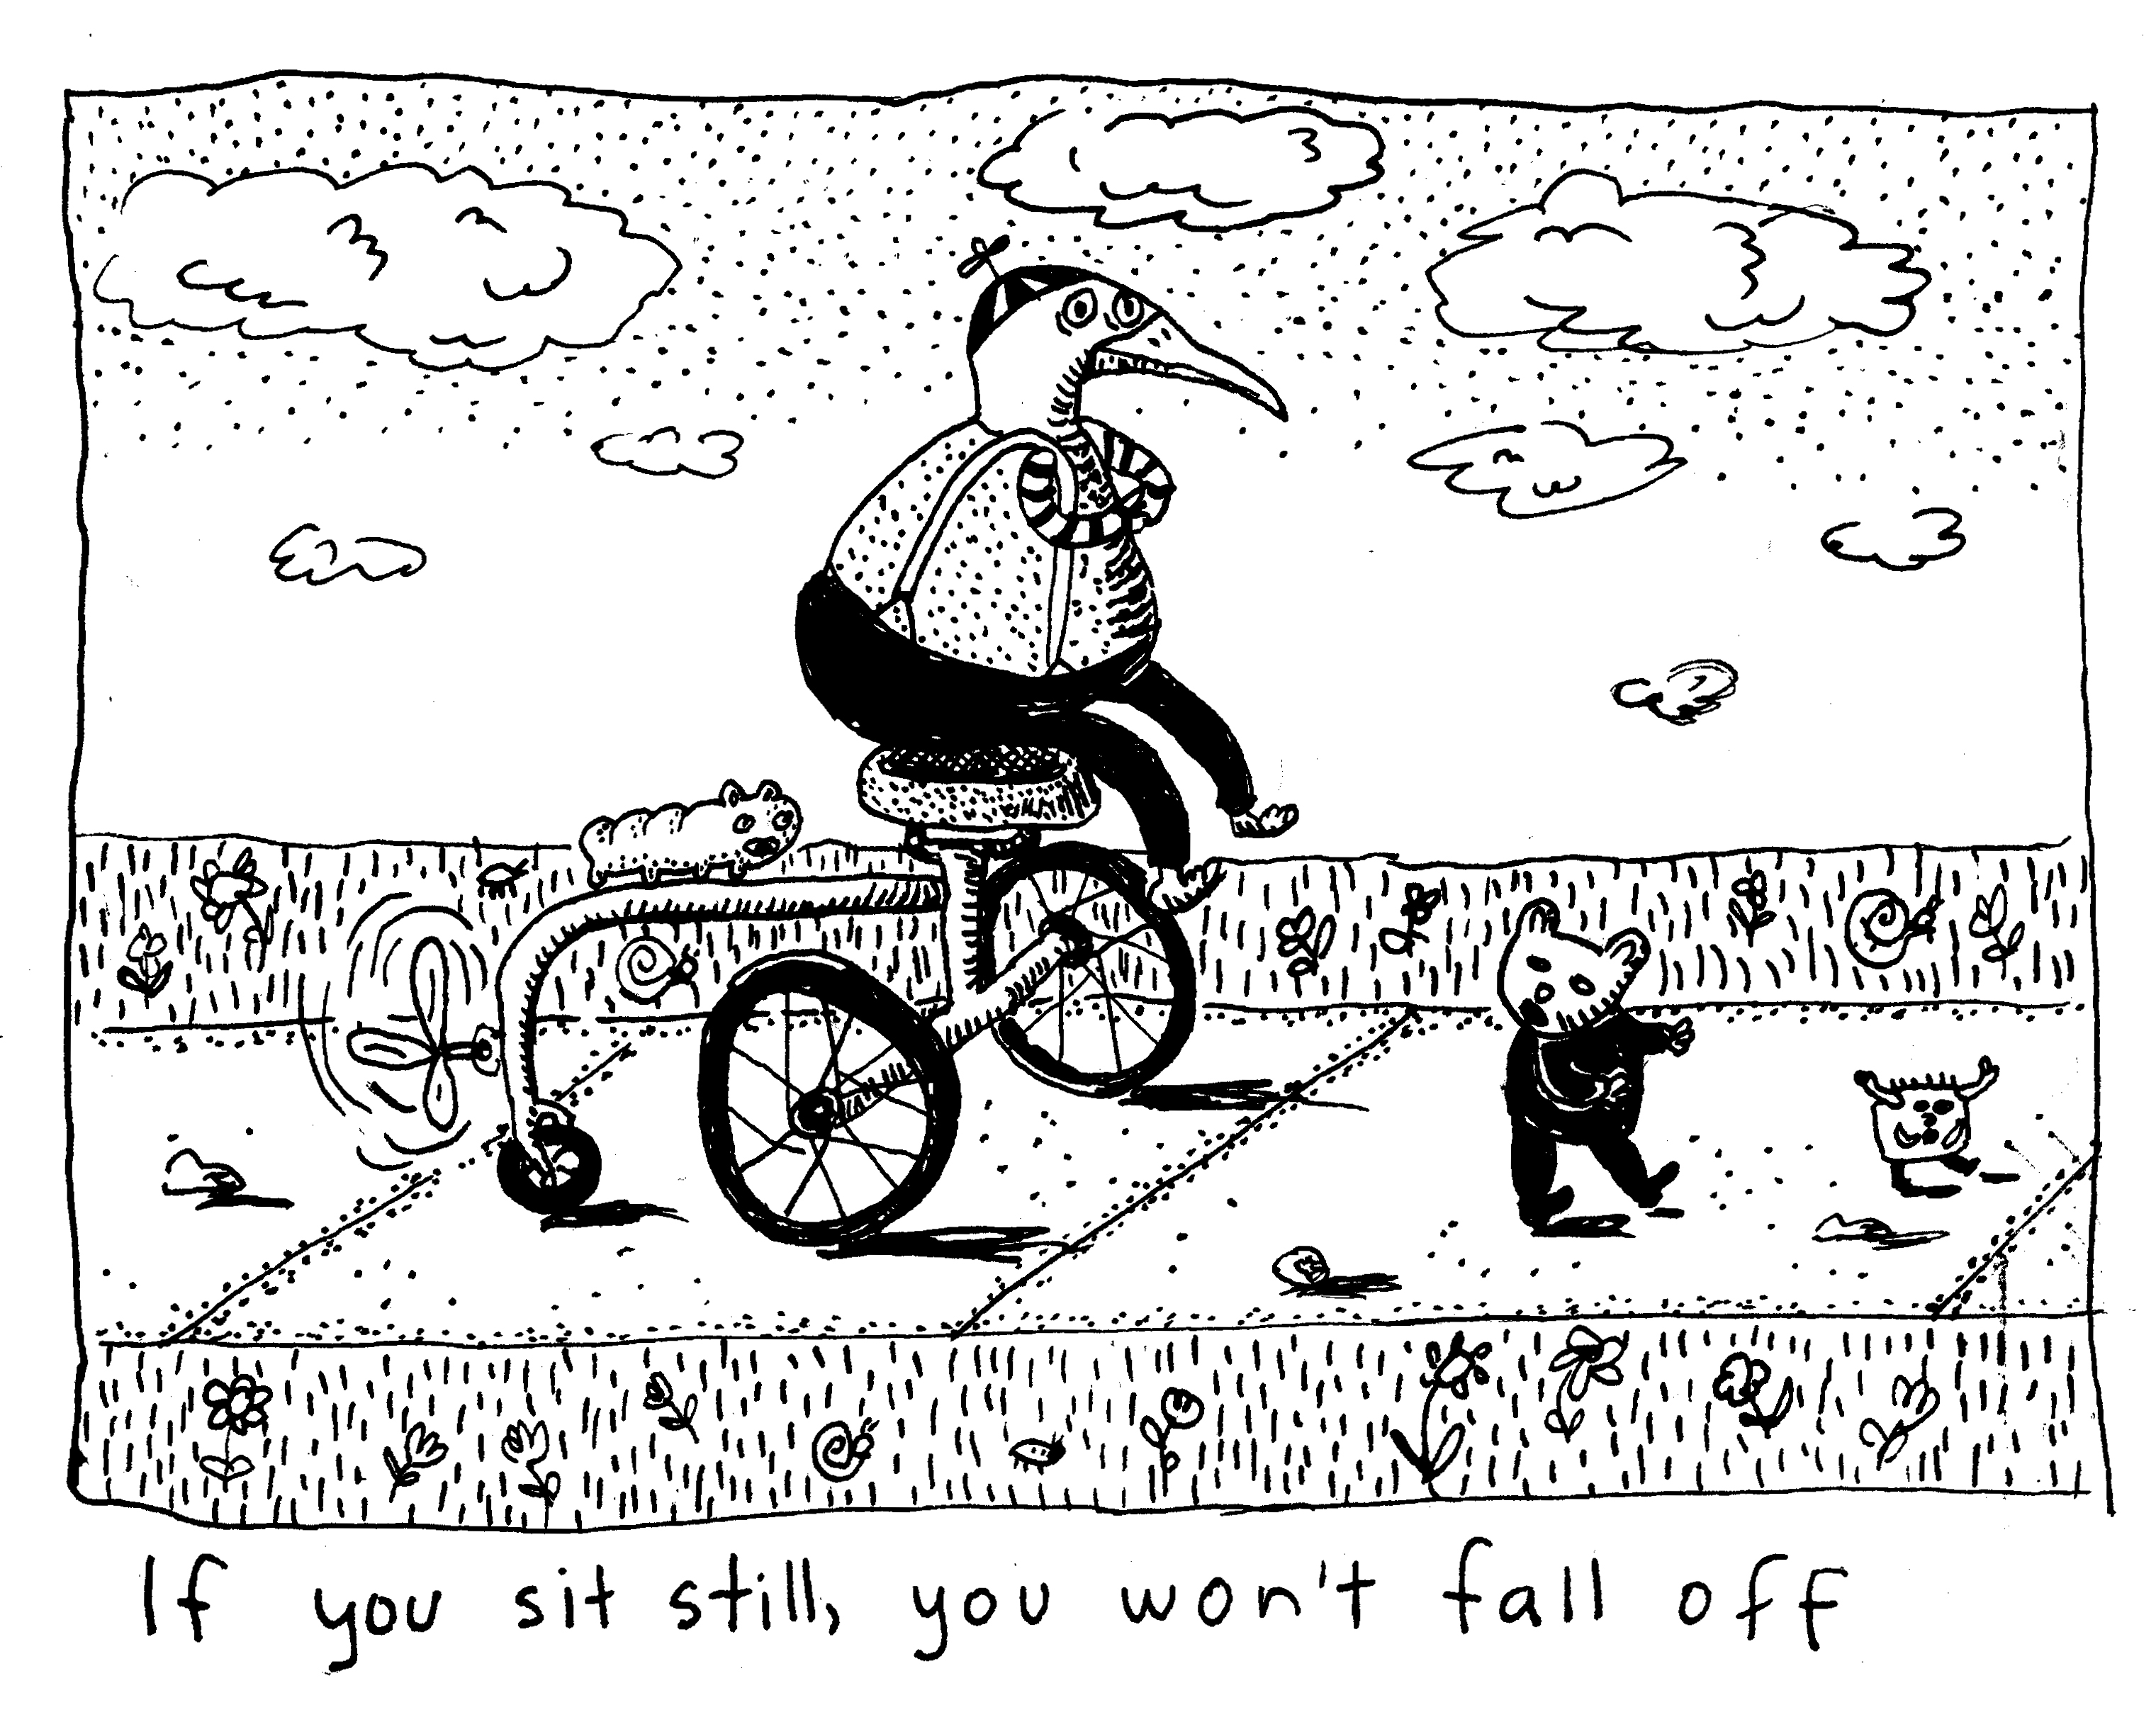 if-you-sit-still-you-wont-fall-off